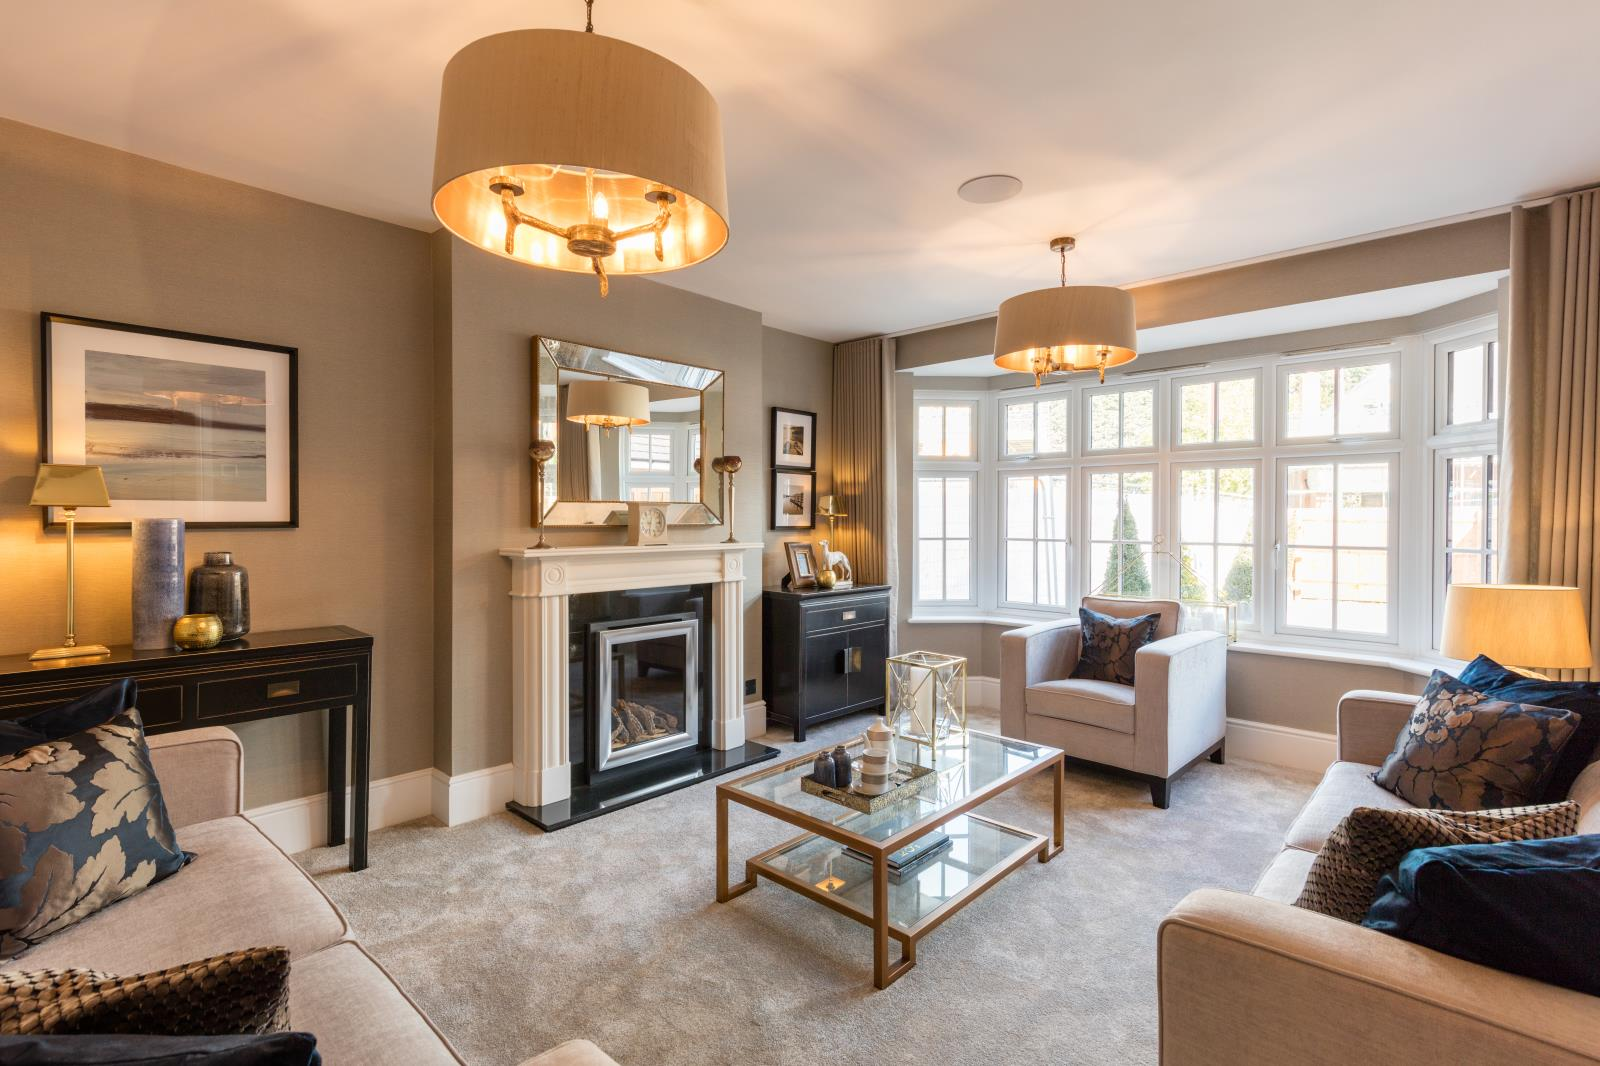 Ways to Make Your Home Look Luxurious